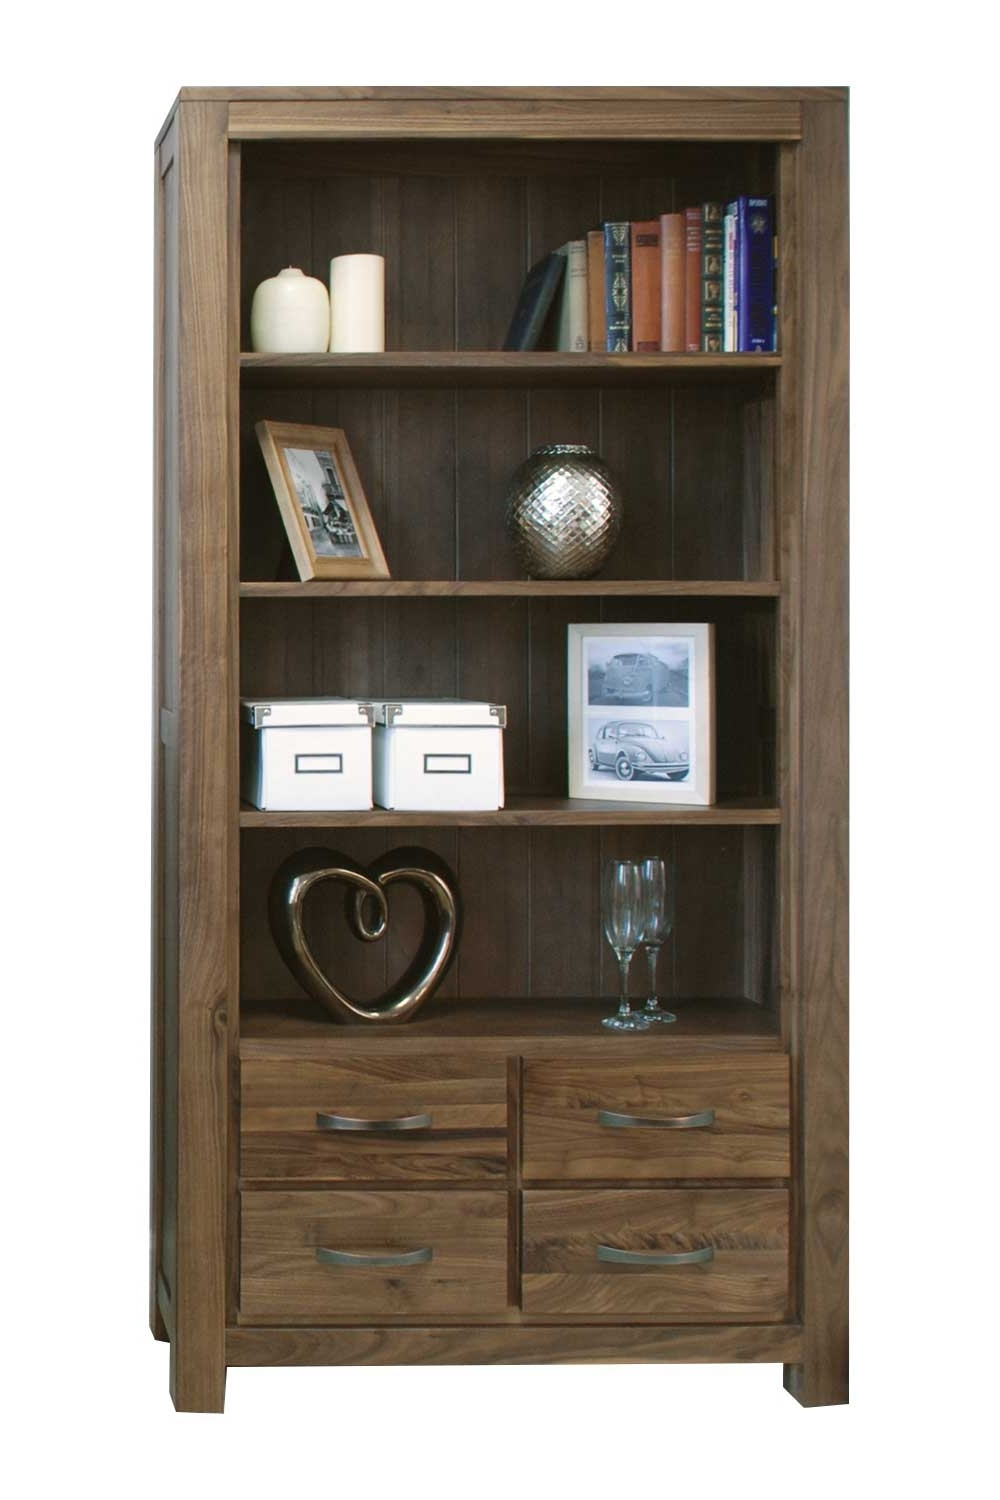 Walnut Bookcase With Drawers : Doherty House – Fabulous Ideas Within Preferred Bookcases With Drawers (View 14 of 15)